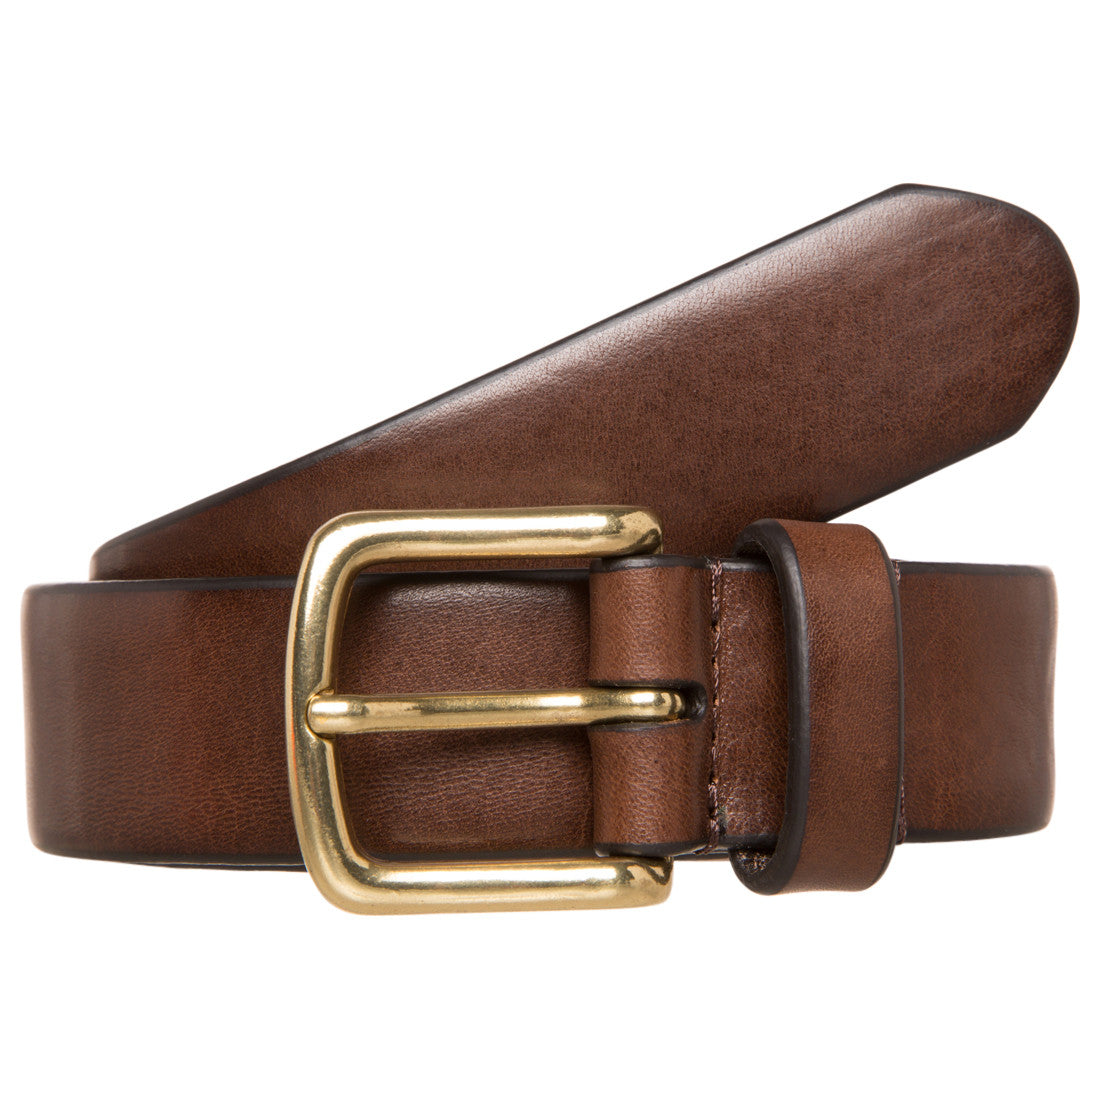 Gents Leather Belt - Eagle